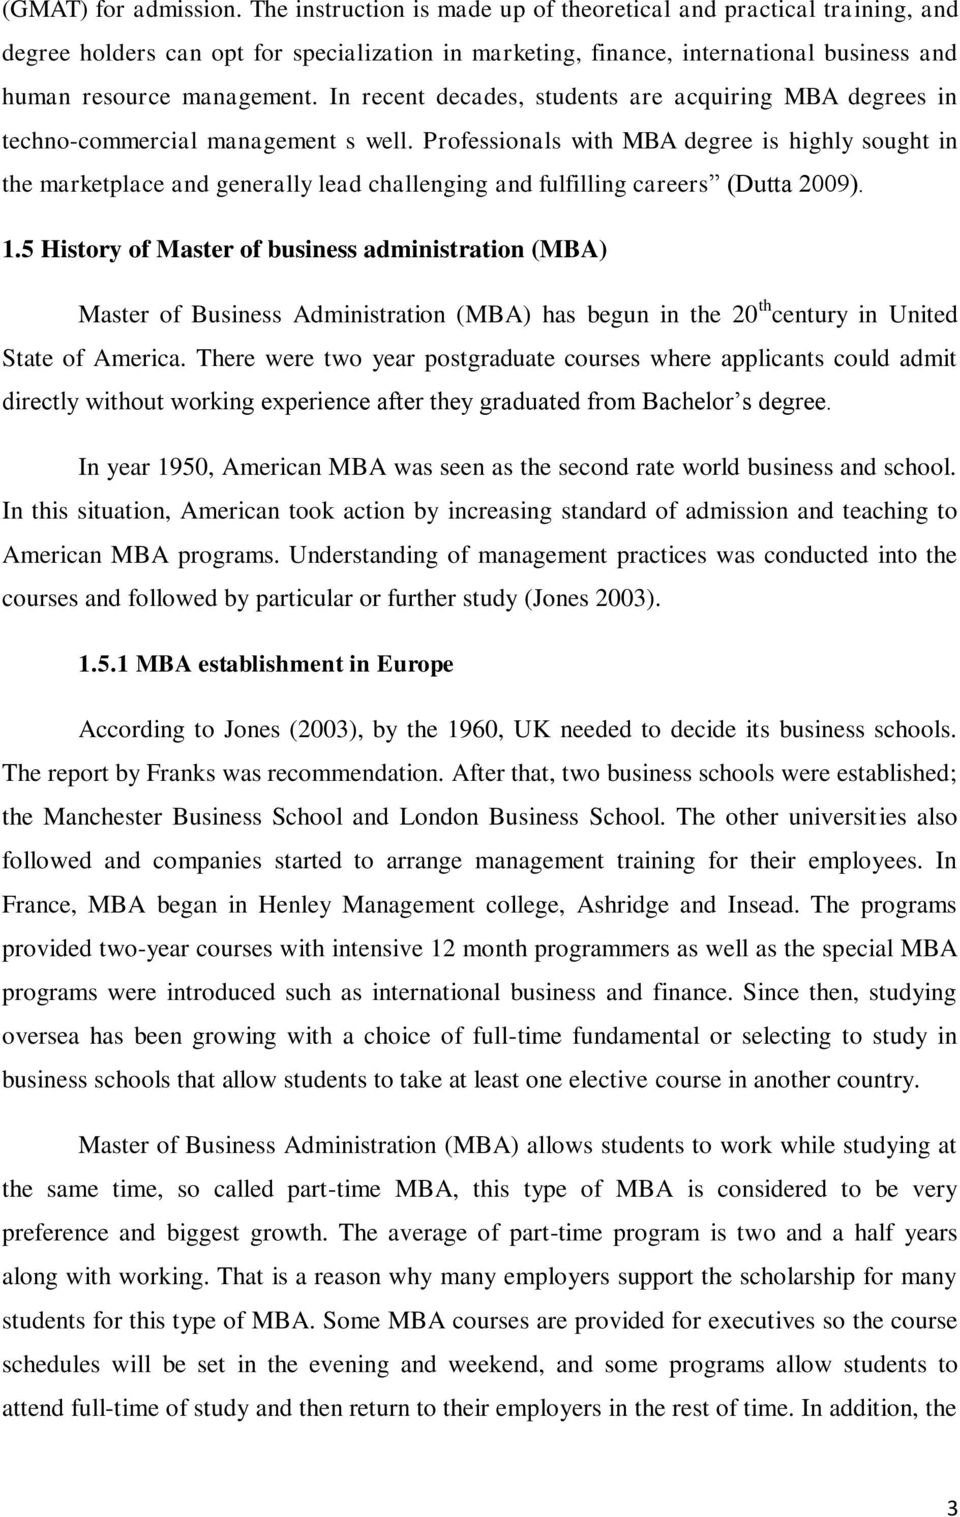 In recent decades, students are acquiring MBA degrees in techno-commercial management s well.